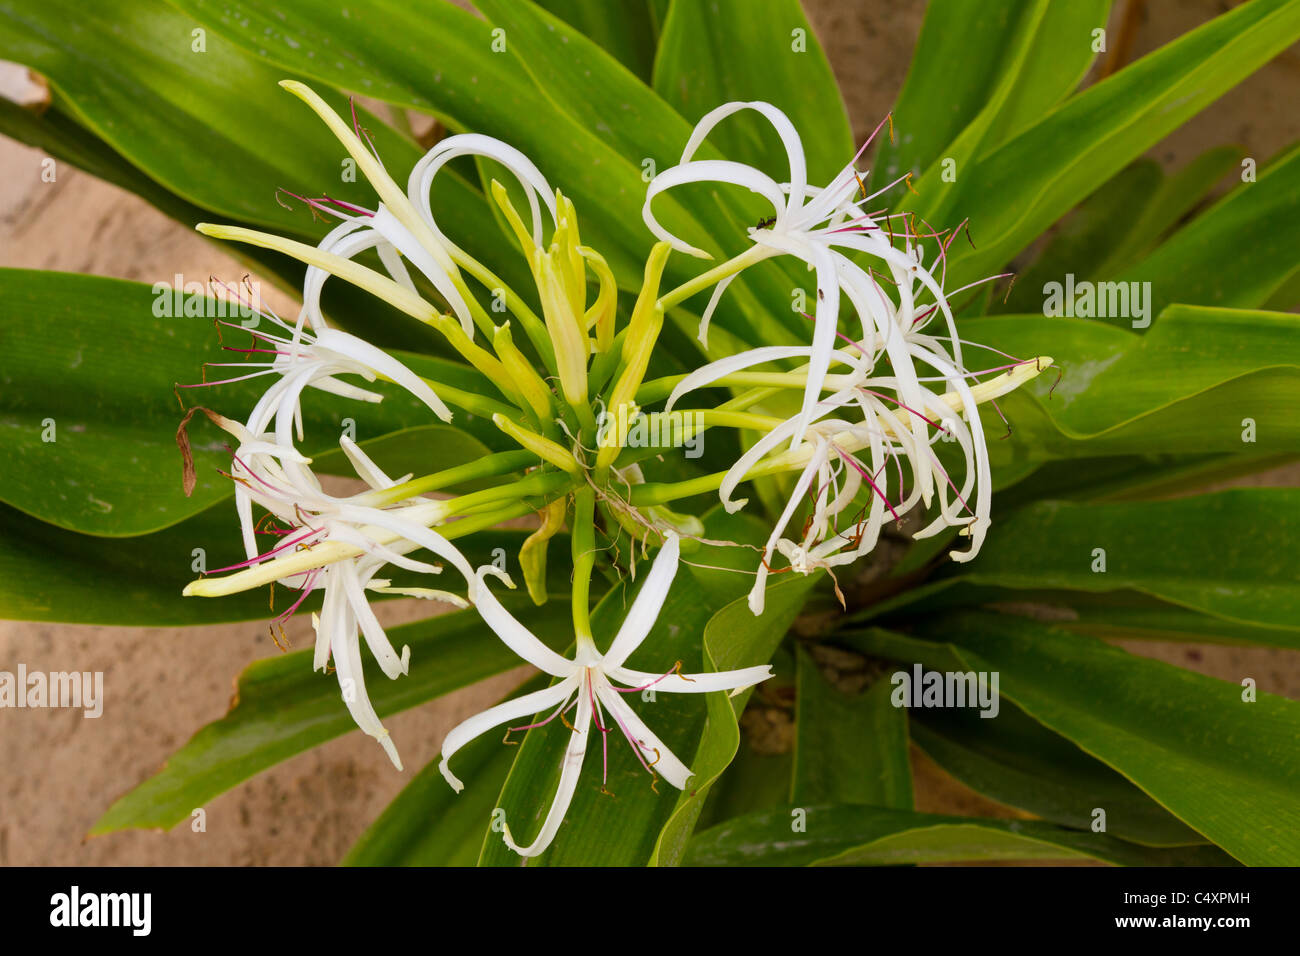 Spider lily stock photos spider lily stock images alamy the spider lily flower in creek park dubai uae stock image izmirmasajfo